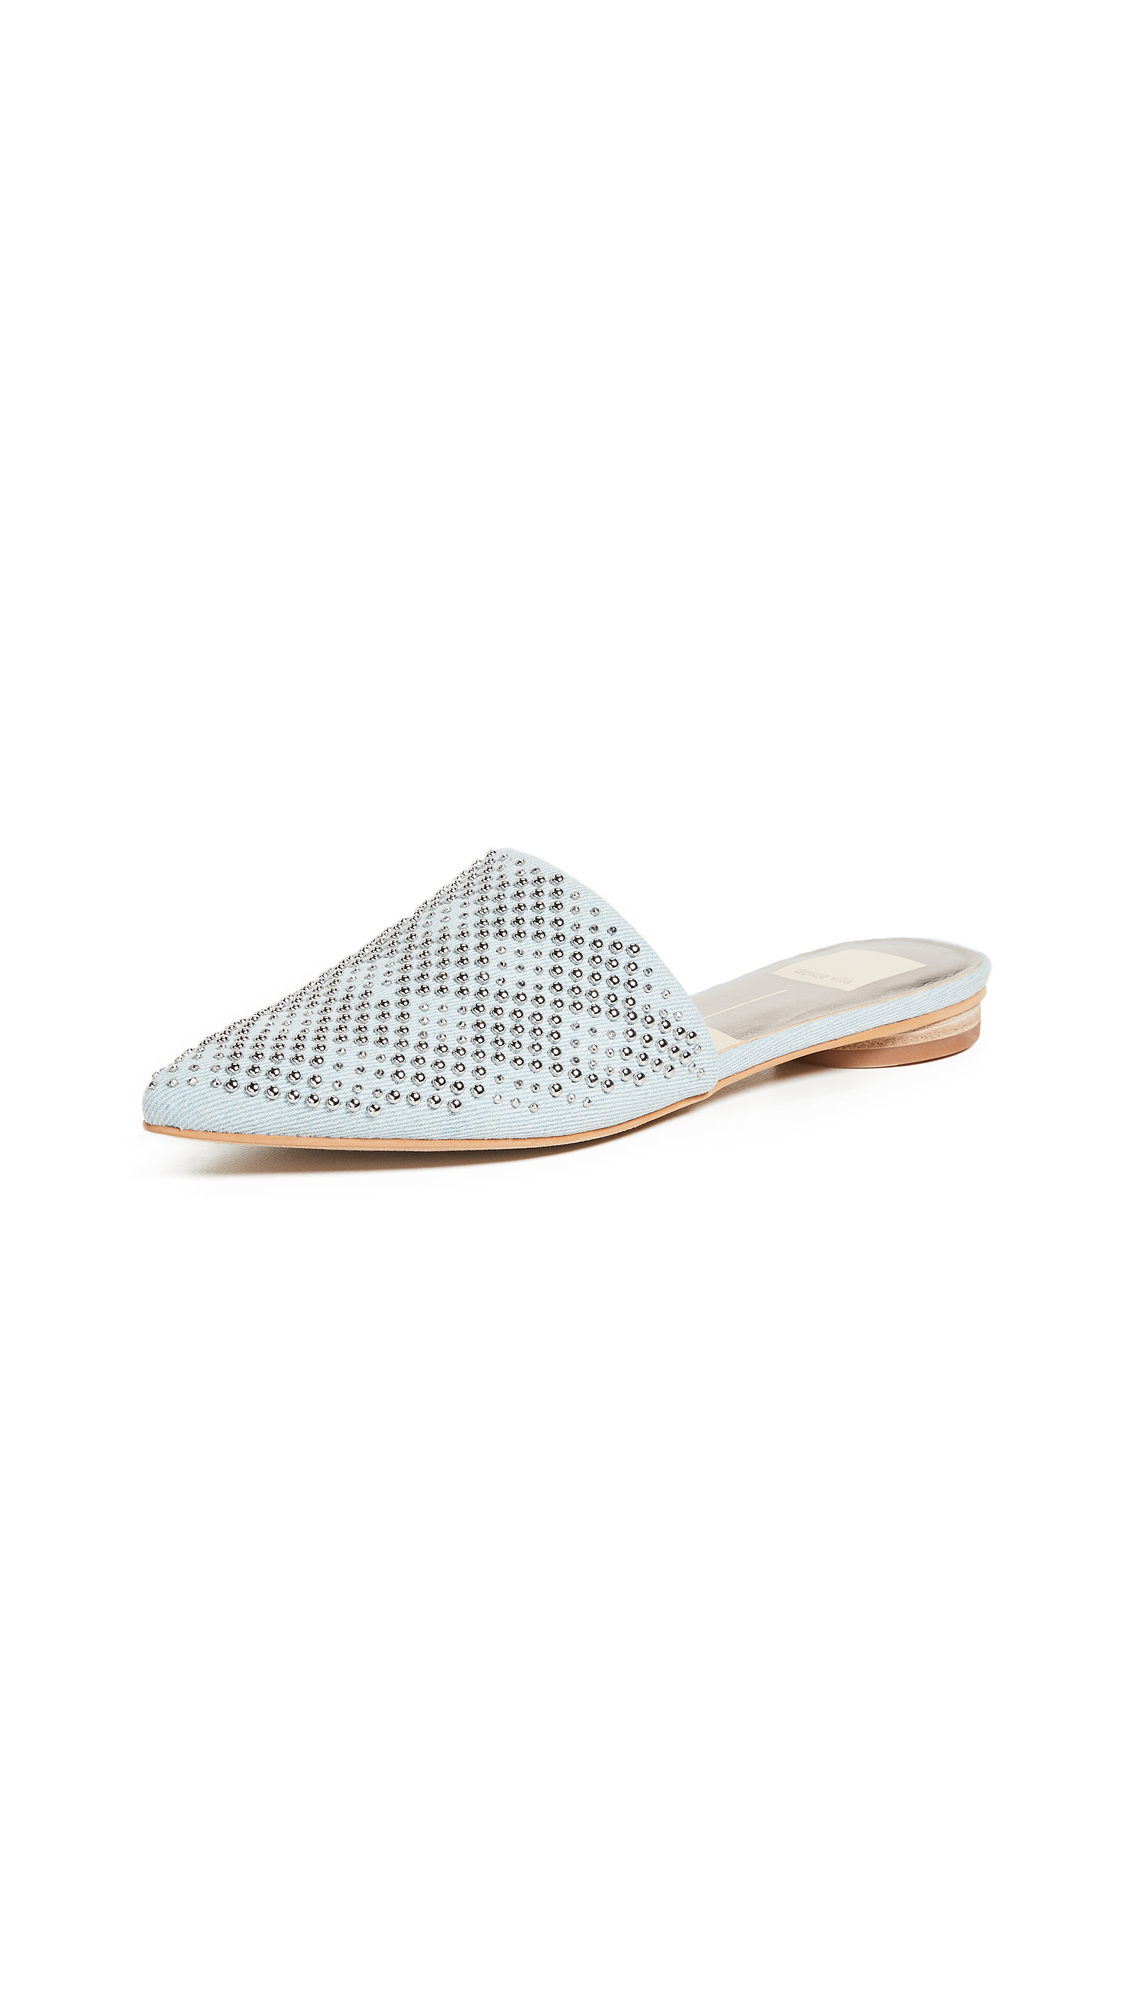 Dolce Vita Elvah Point Toe Mules - Light Blue